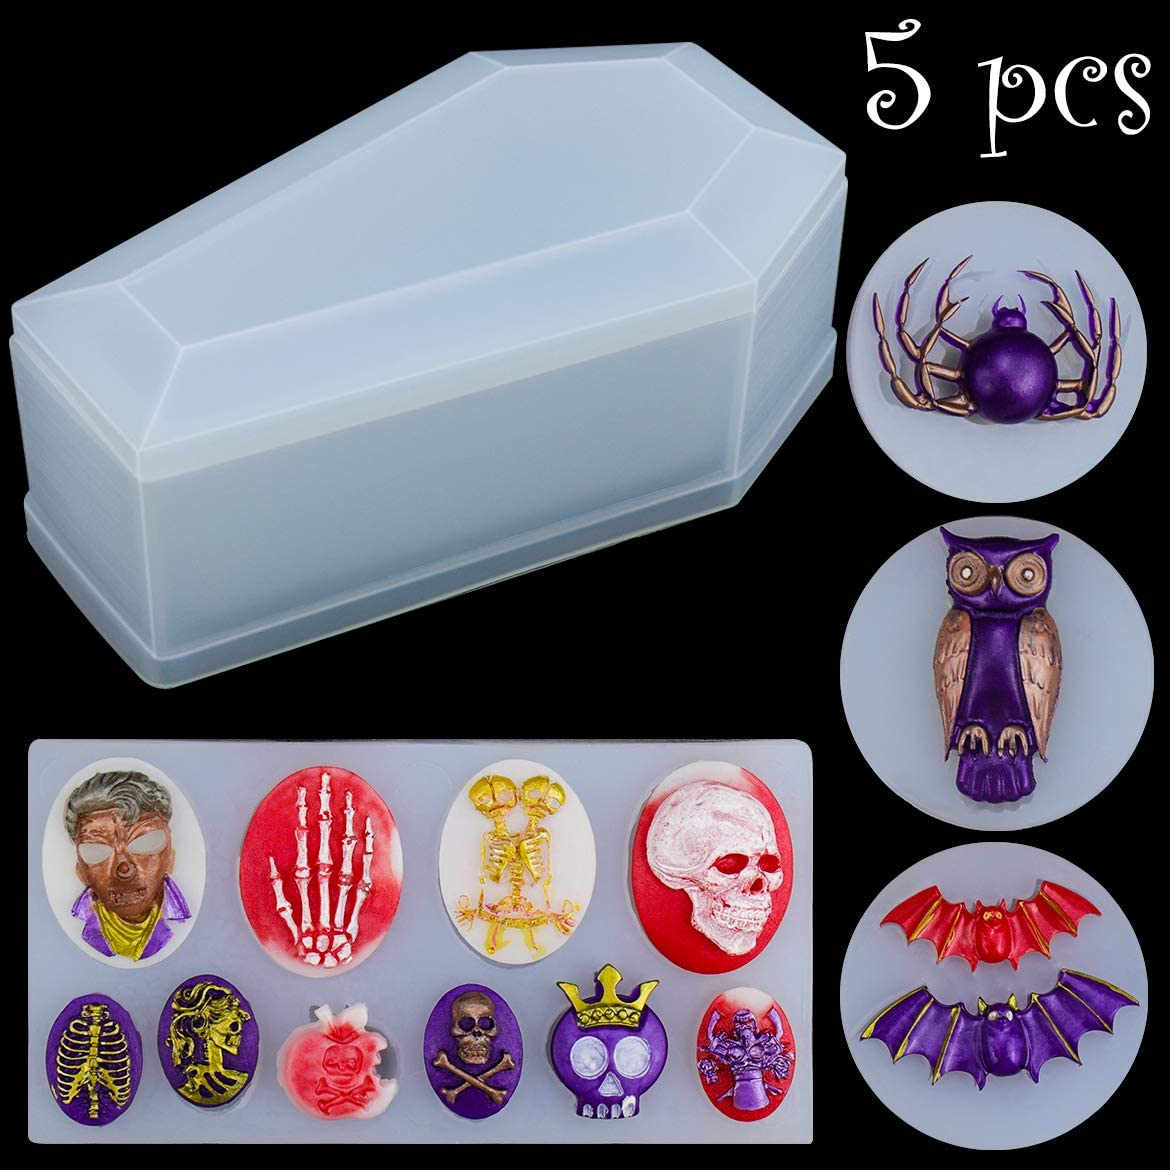 5 Pieces Resin Silicone Molds Set, Box Molds Resin Coffin Molds Including Skulls Silicone Pendant Series, Bat, Spider, Owl Jewelry Casting Molds Silicone for DIY Jewelry Craft Making